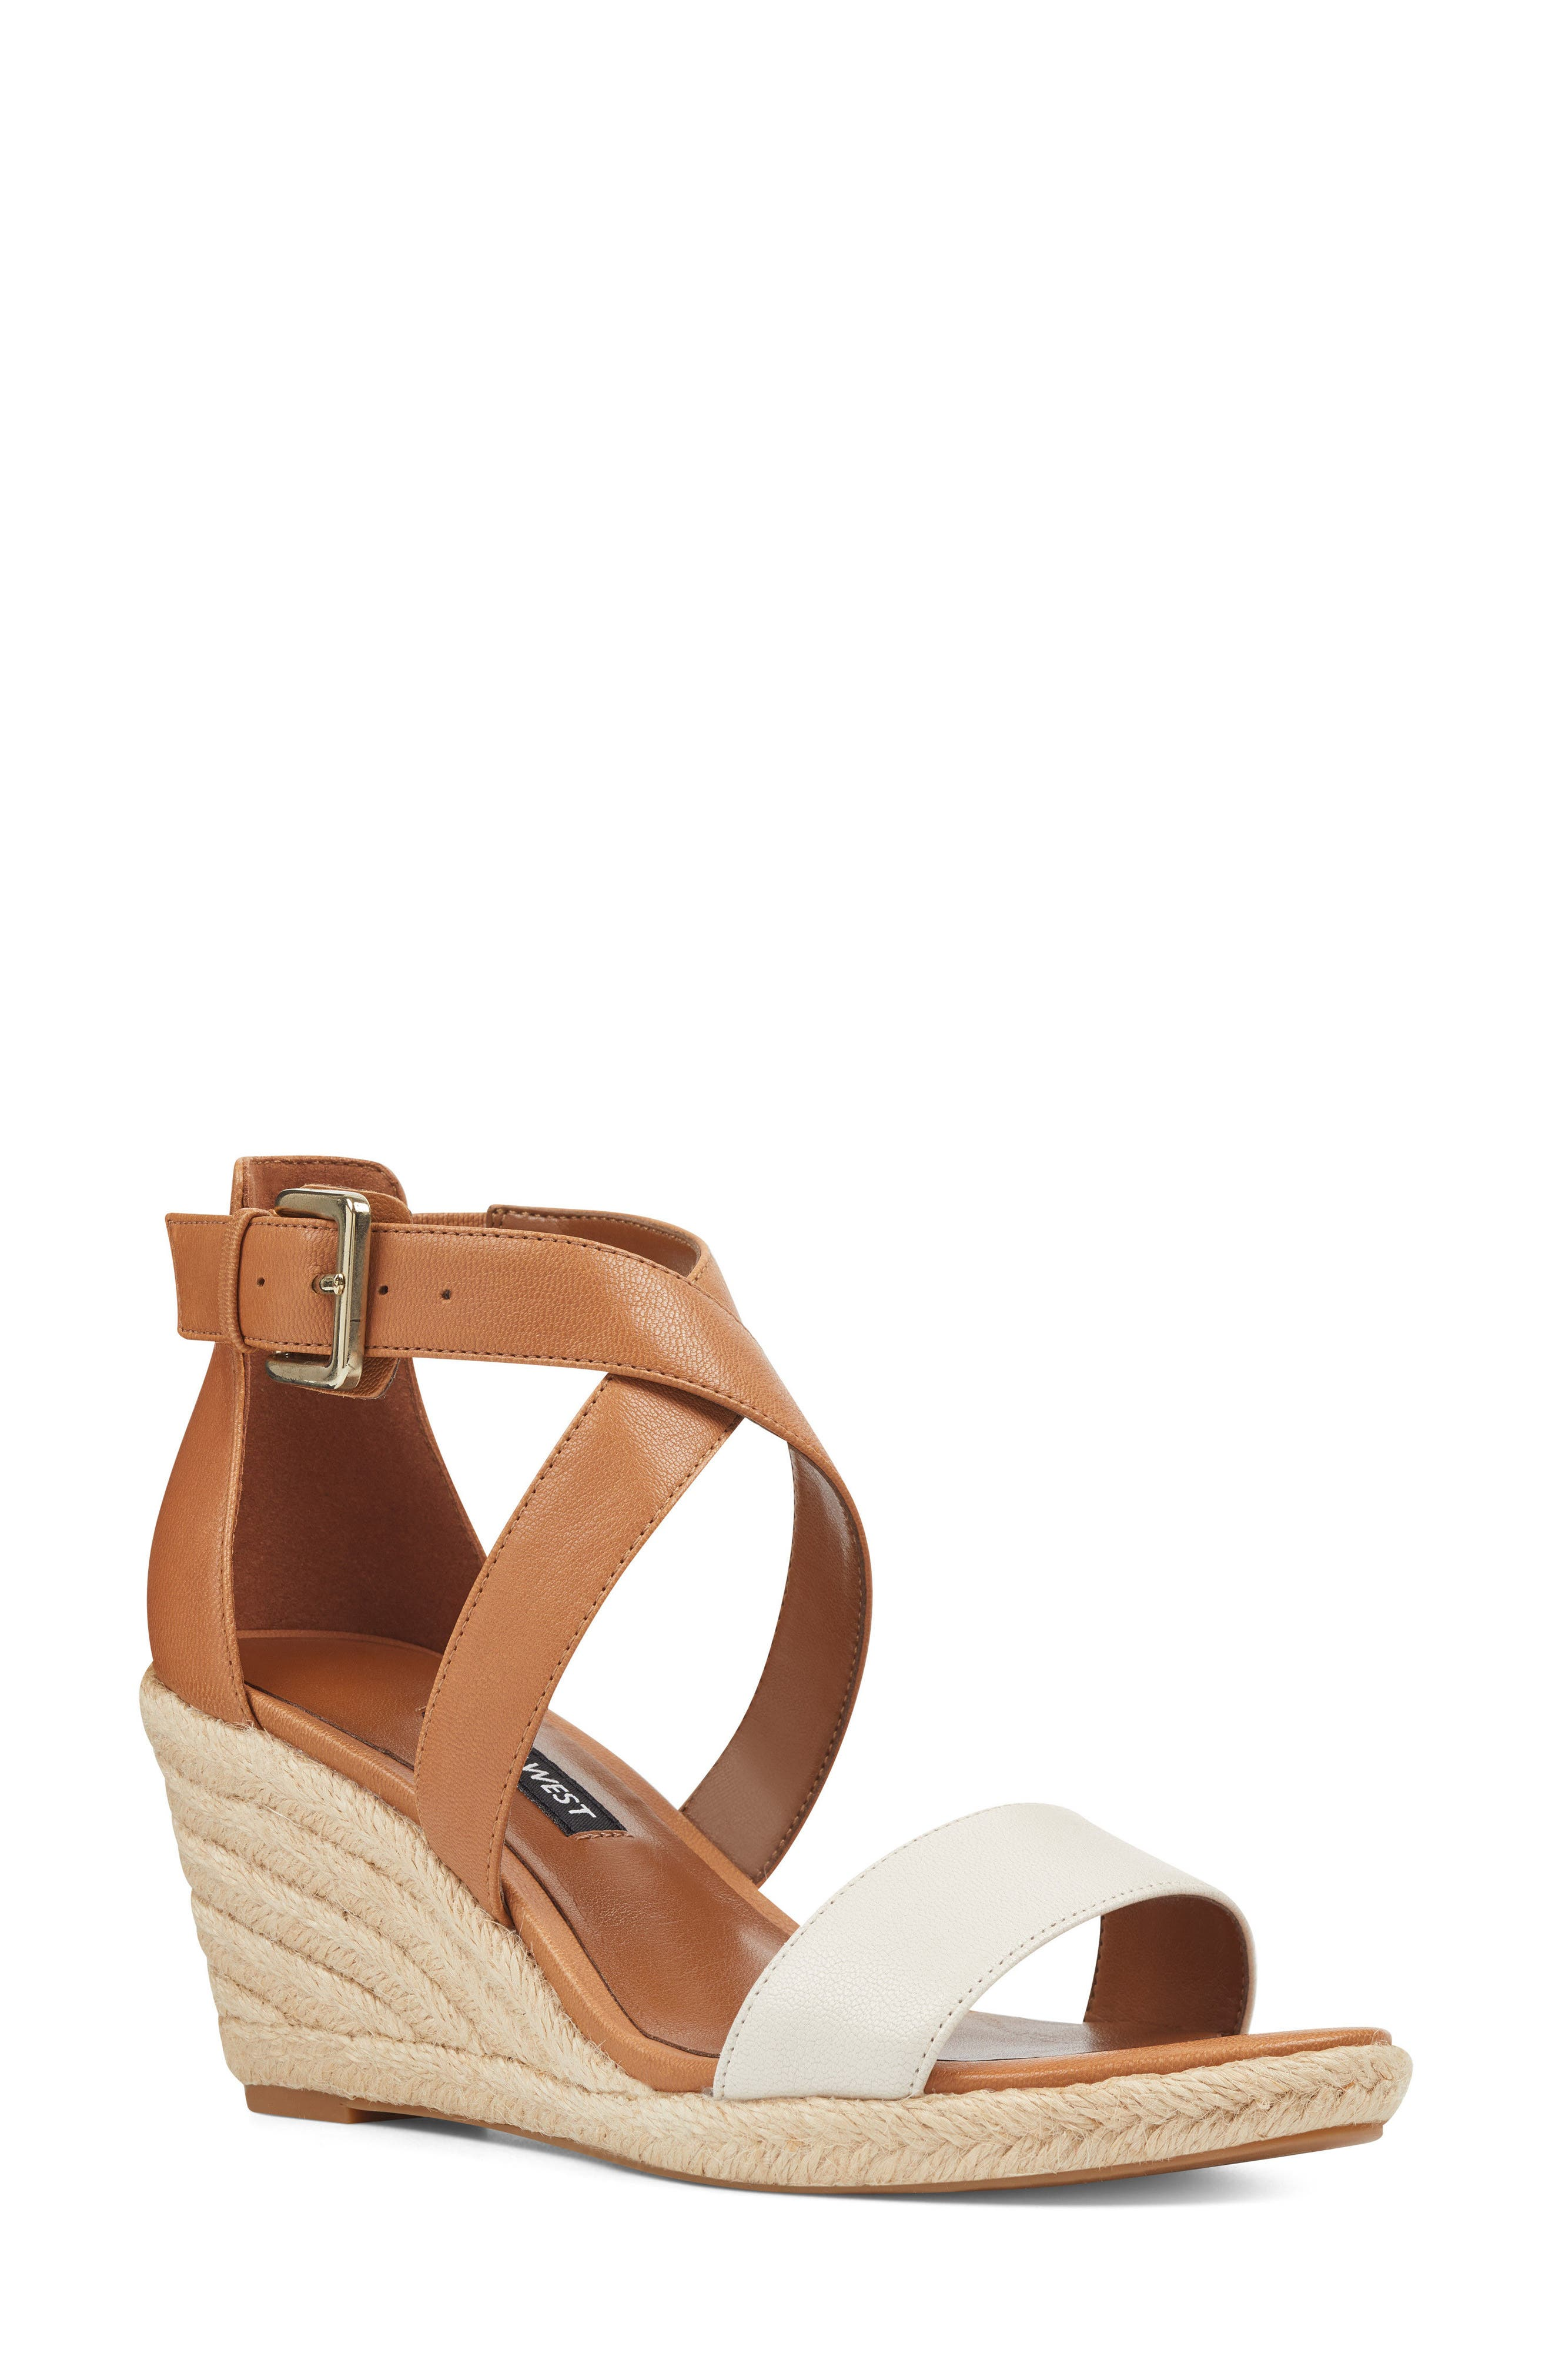 Jorjapeach Espadrille Wedge Sandal,                             Main thumbnail 1, color,                             White Leather